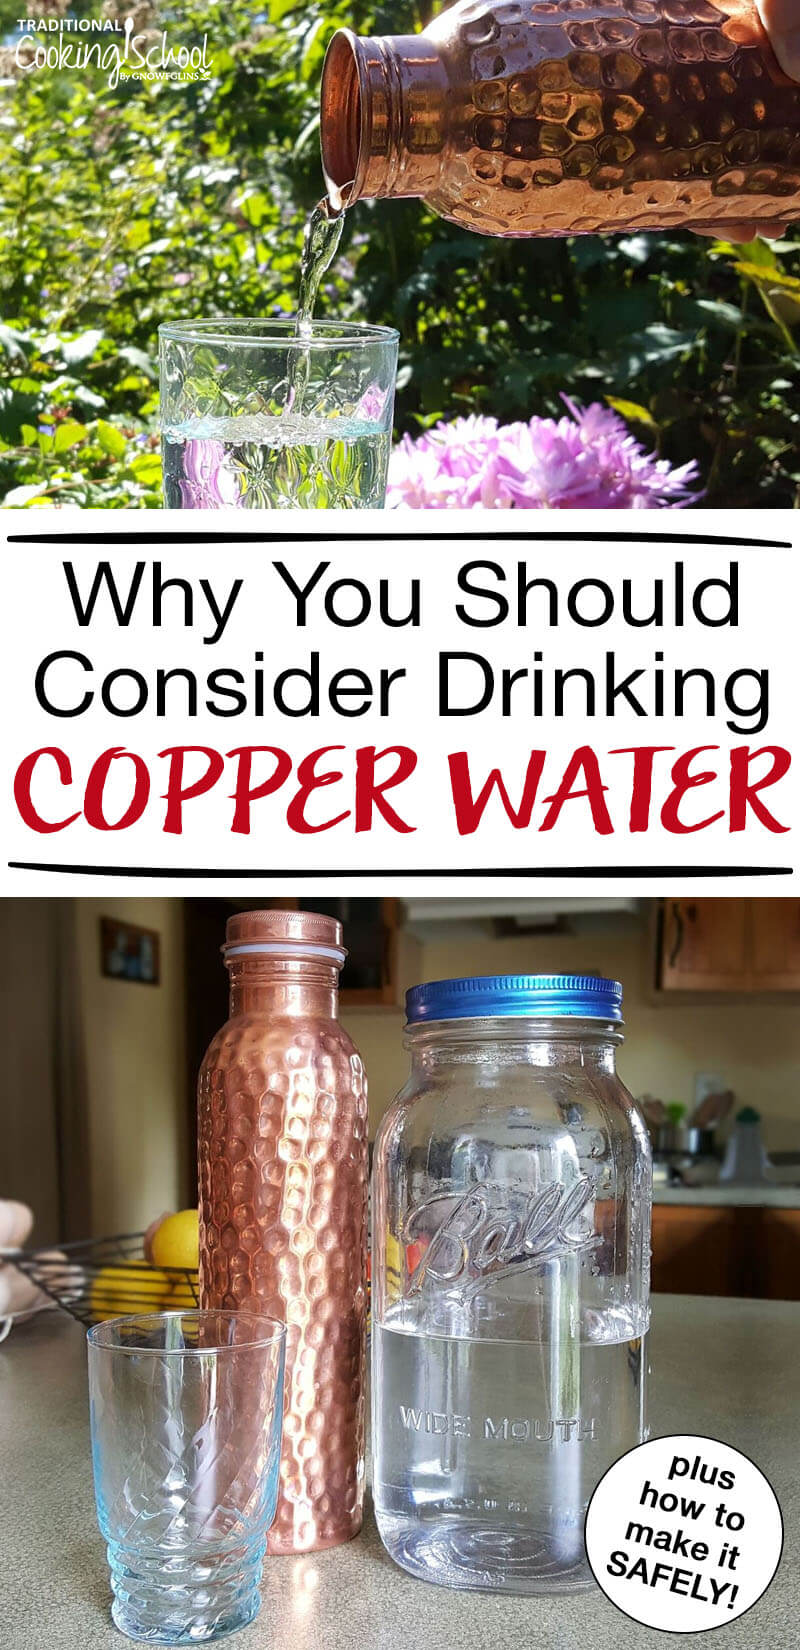 """photo collage of a copper water bottle, glass jar of water, and large mason jar of water with text overlay: """"Why You Should Consider Drinking Copper Water"""""""